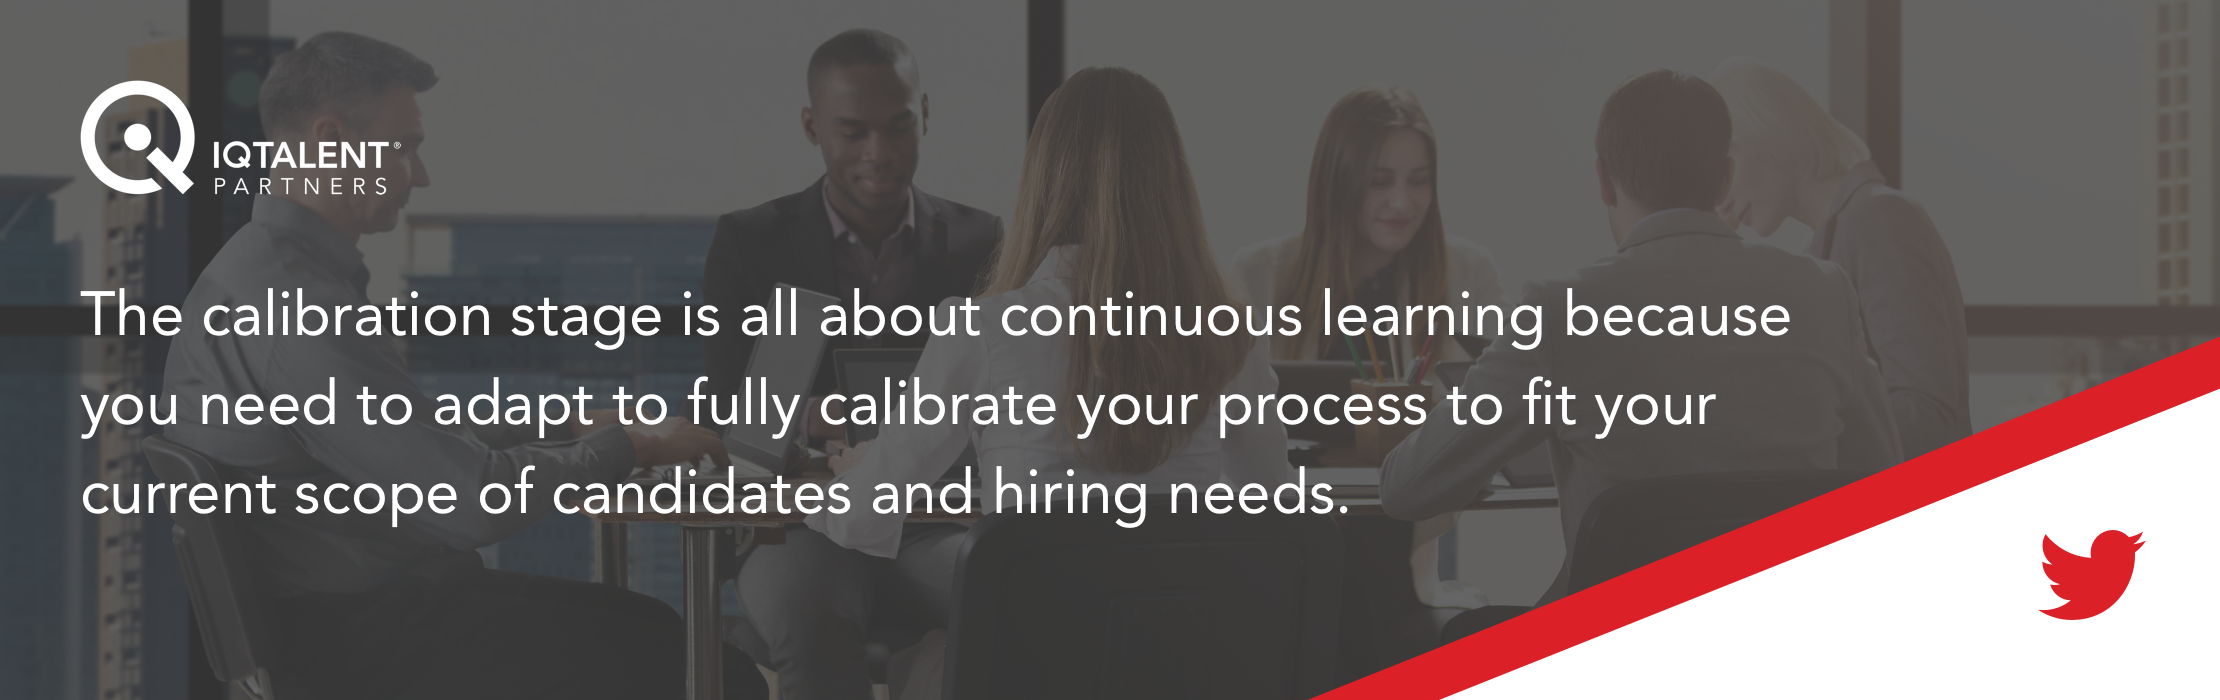 The calibration stage is all about continuous learning because you need to adapt to fully calibrate your process to fit your current scope of candidates and hiring needs.